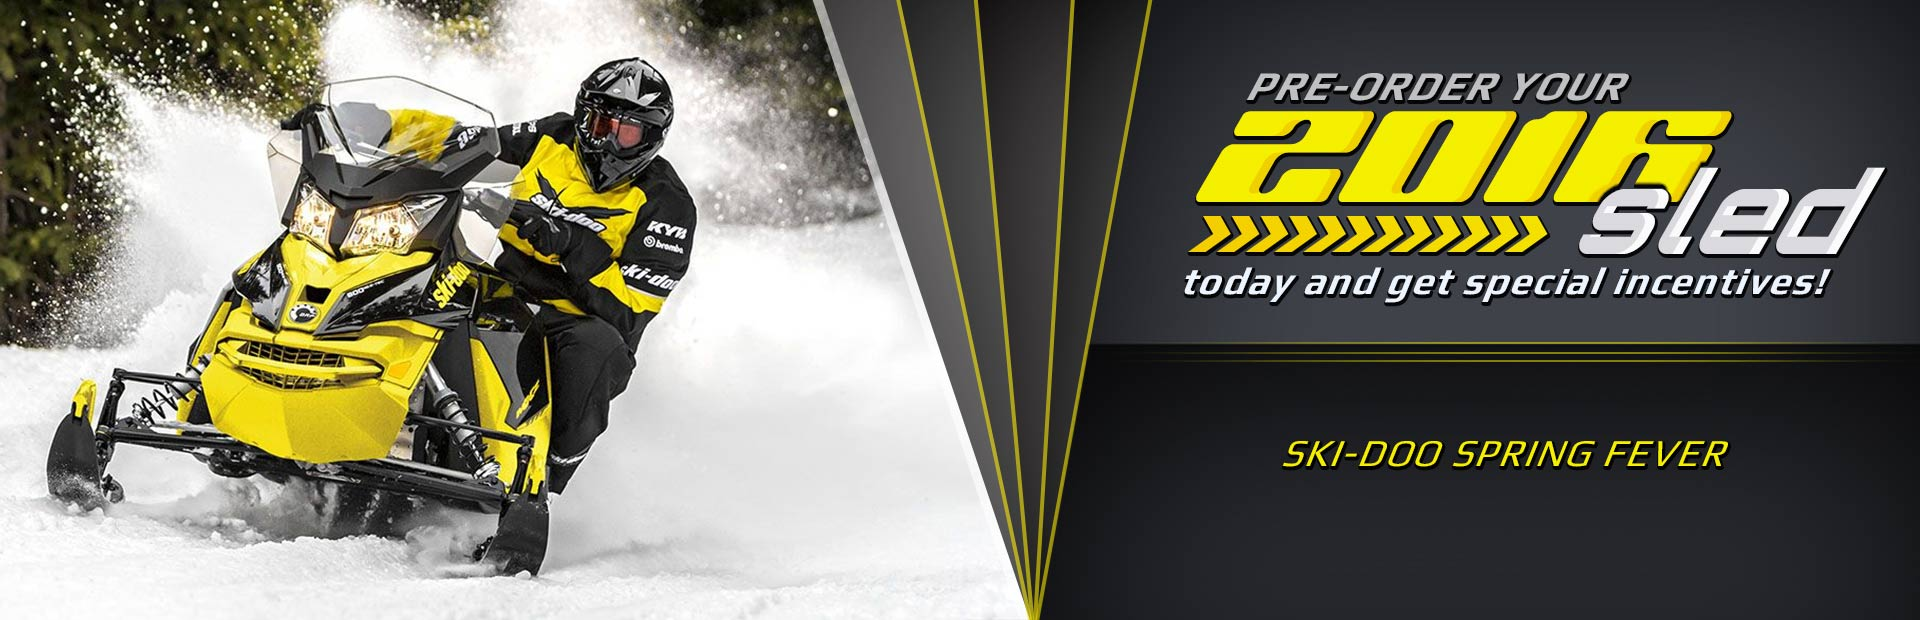 Ski-Doo Spring Fever: Pre-order your 2016 sled today and get special incentives!